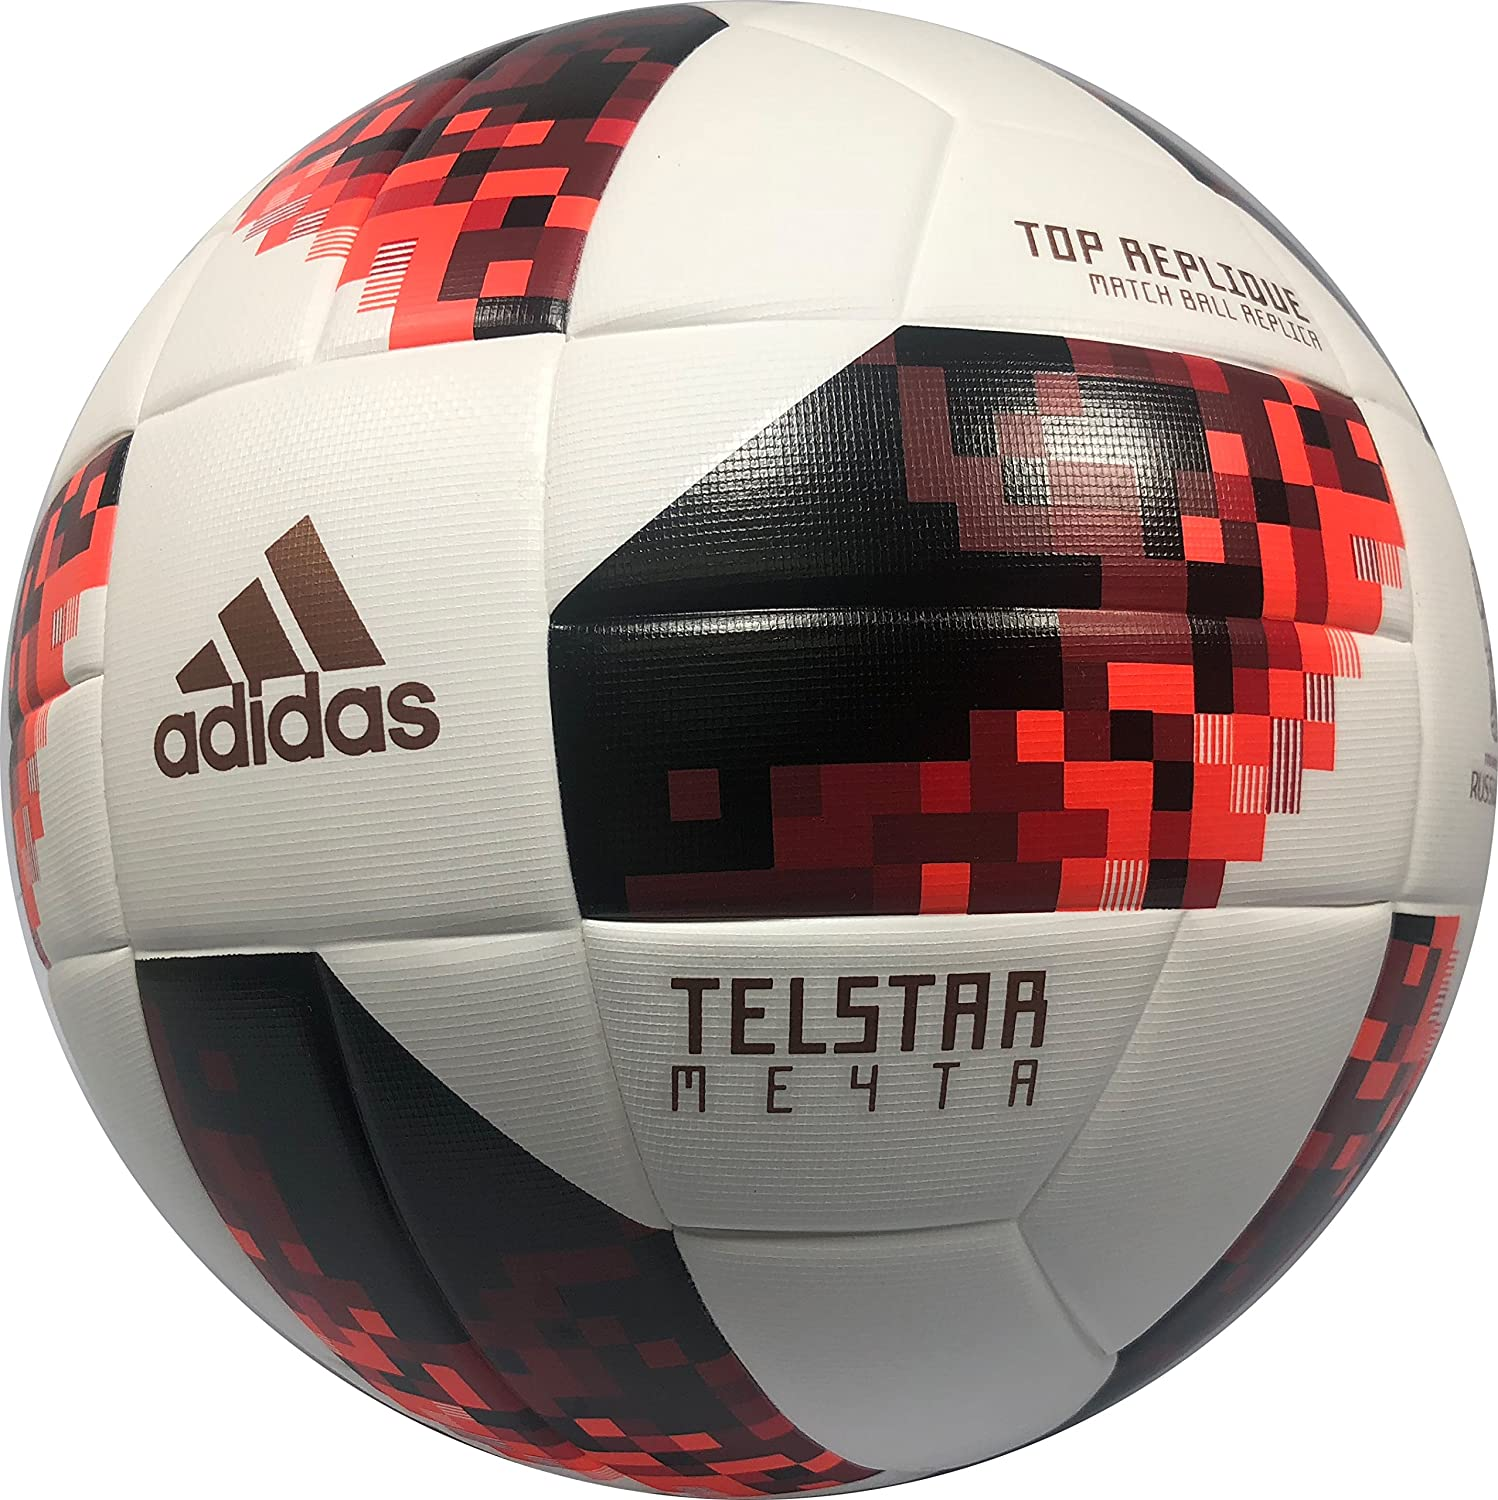 Amazon Telstar Adidas World Cup Russia 18 Knock Out Top Replique Soccer Ball 4 ages 6 12 Sports & Outdoors